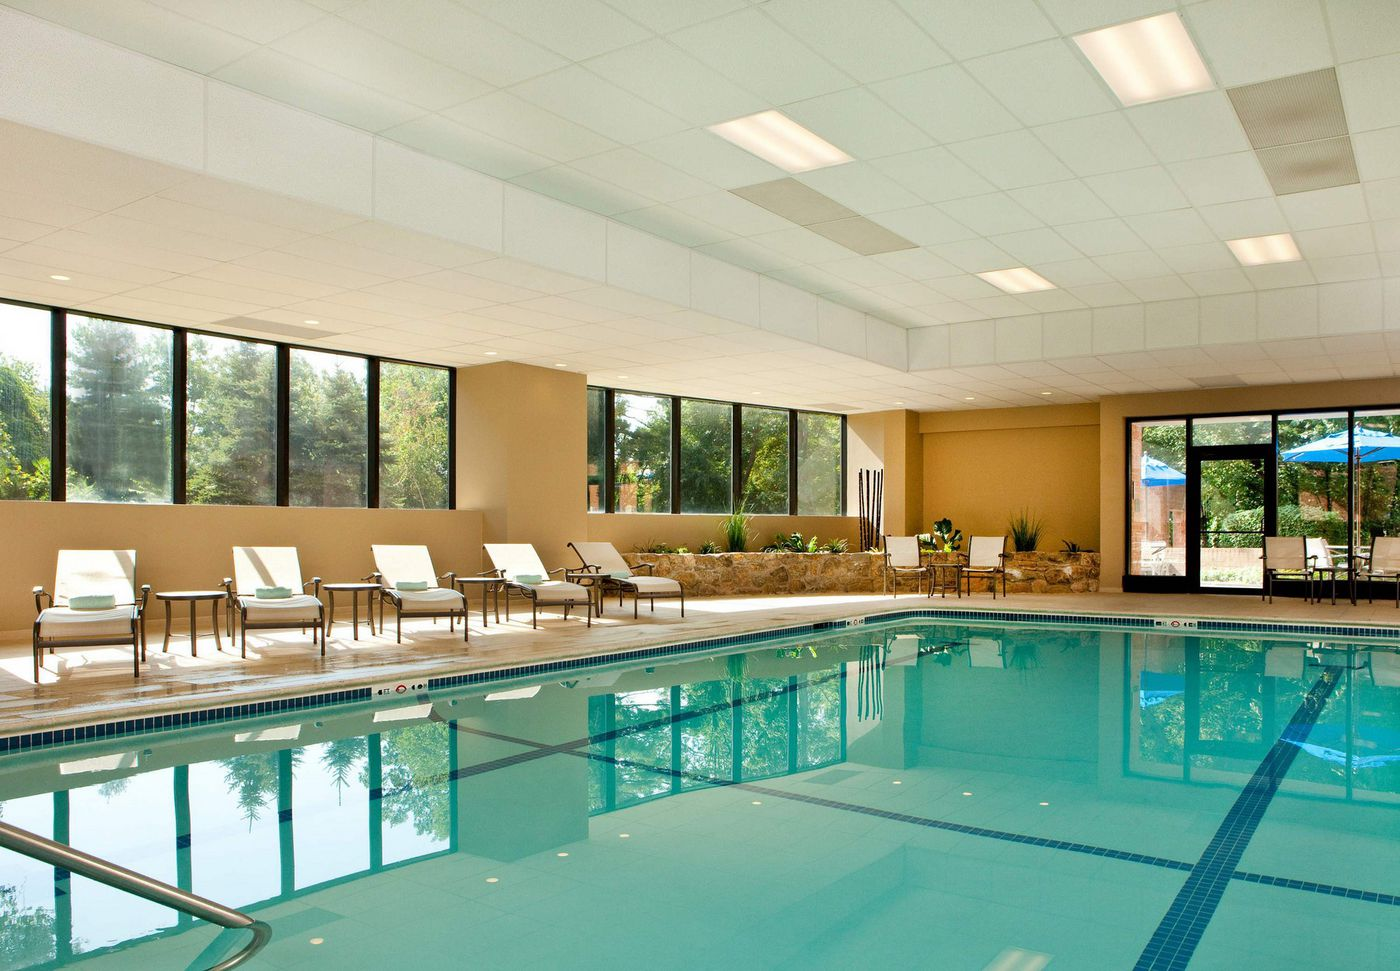 Indoor Swimming Pools 101: Cost, Construction, Advantages, & More!